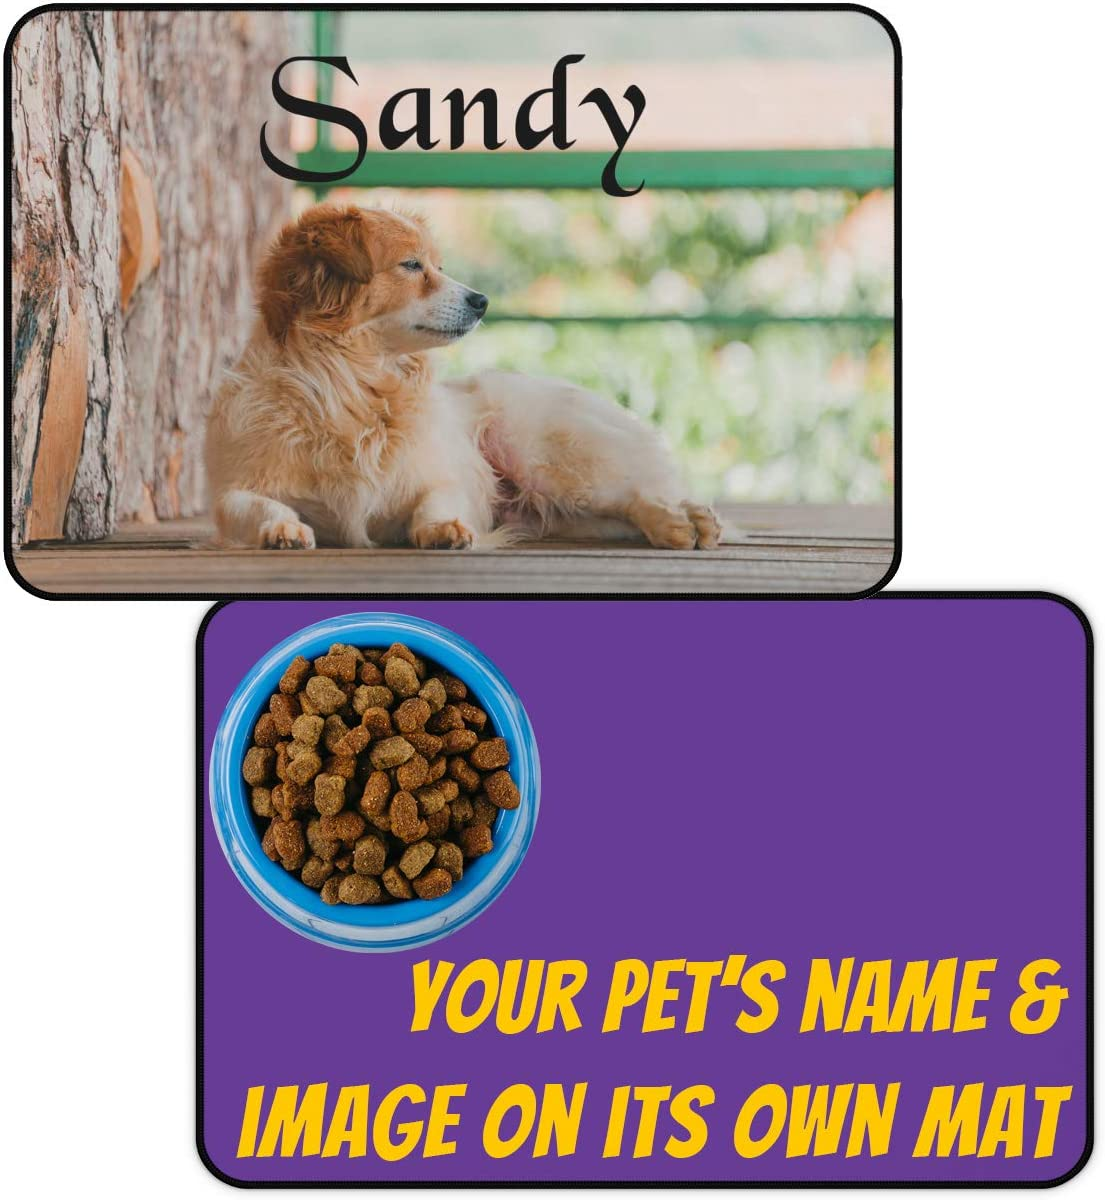 Custom Large Dog Food Mats - Add Photo, Picture and Pet's Name - Personalized Food and Water Bowl Placemat for Dogs, Cats